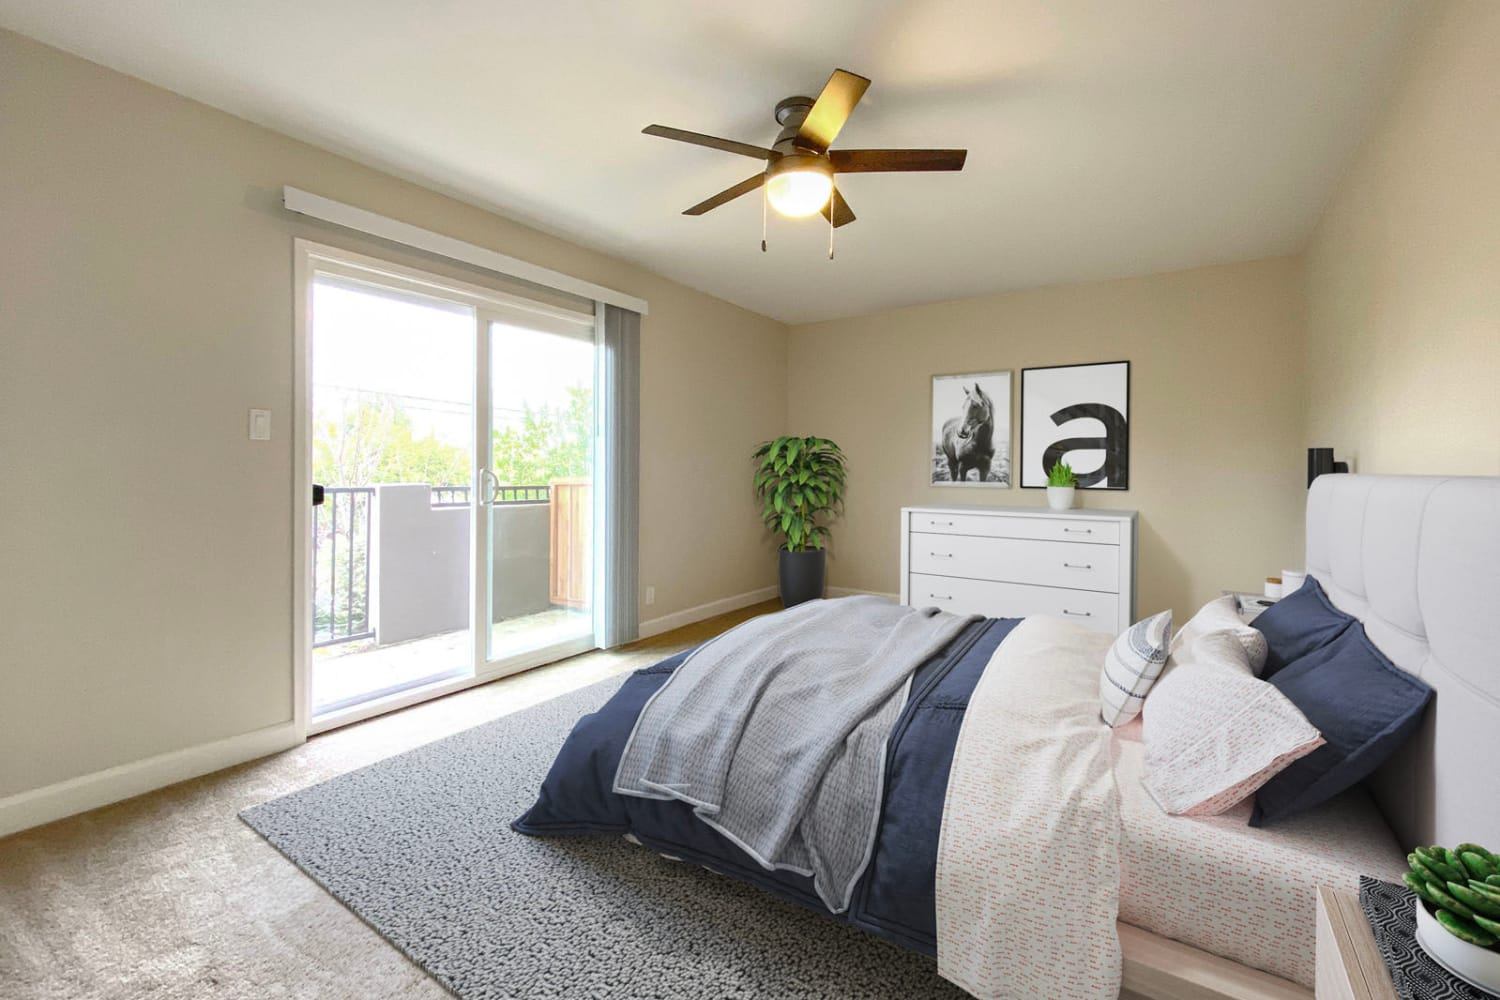 Model home's well-furnished primary suite with a sliding door to the private balcony outside at Pleasanton Heights in Pleasanton, California